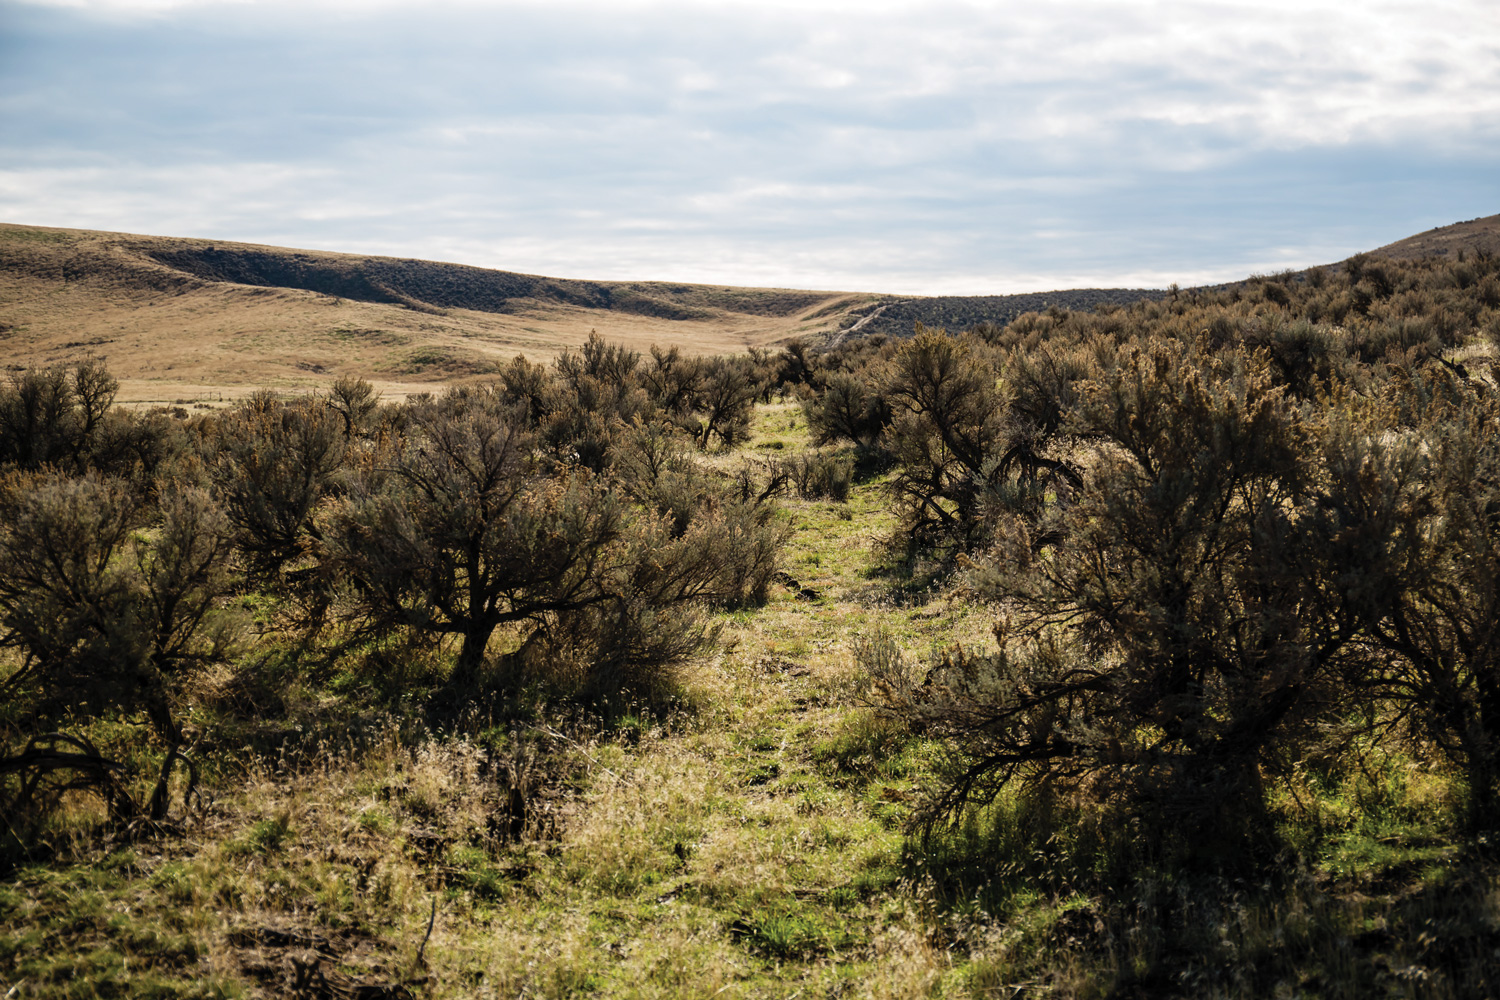 Wagon Ruts On The Oregon Trail At Keeney Pass South Of Vale, Oregon